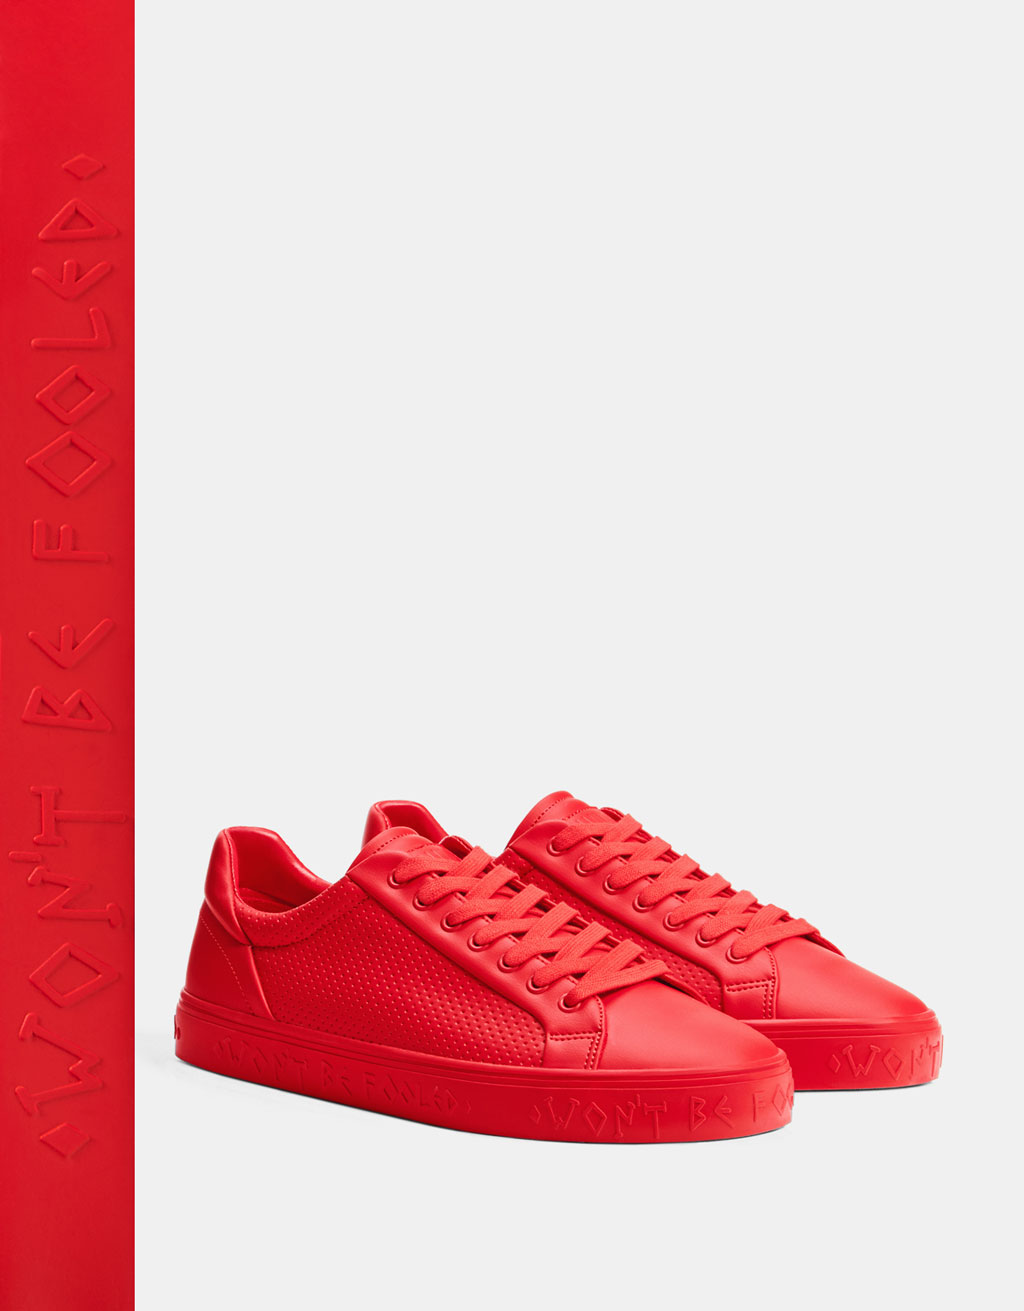 Men's red perforated trainers